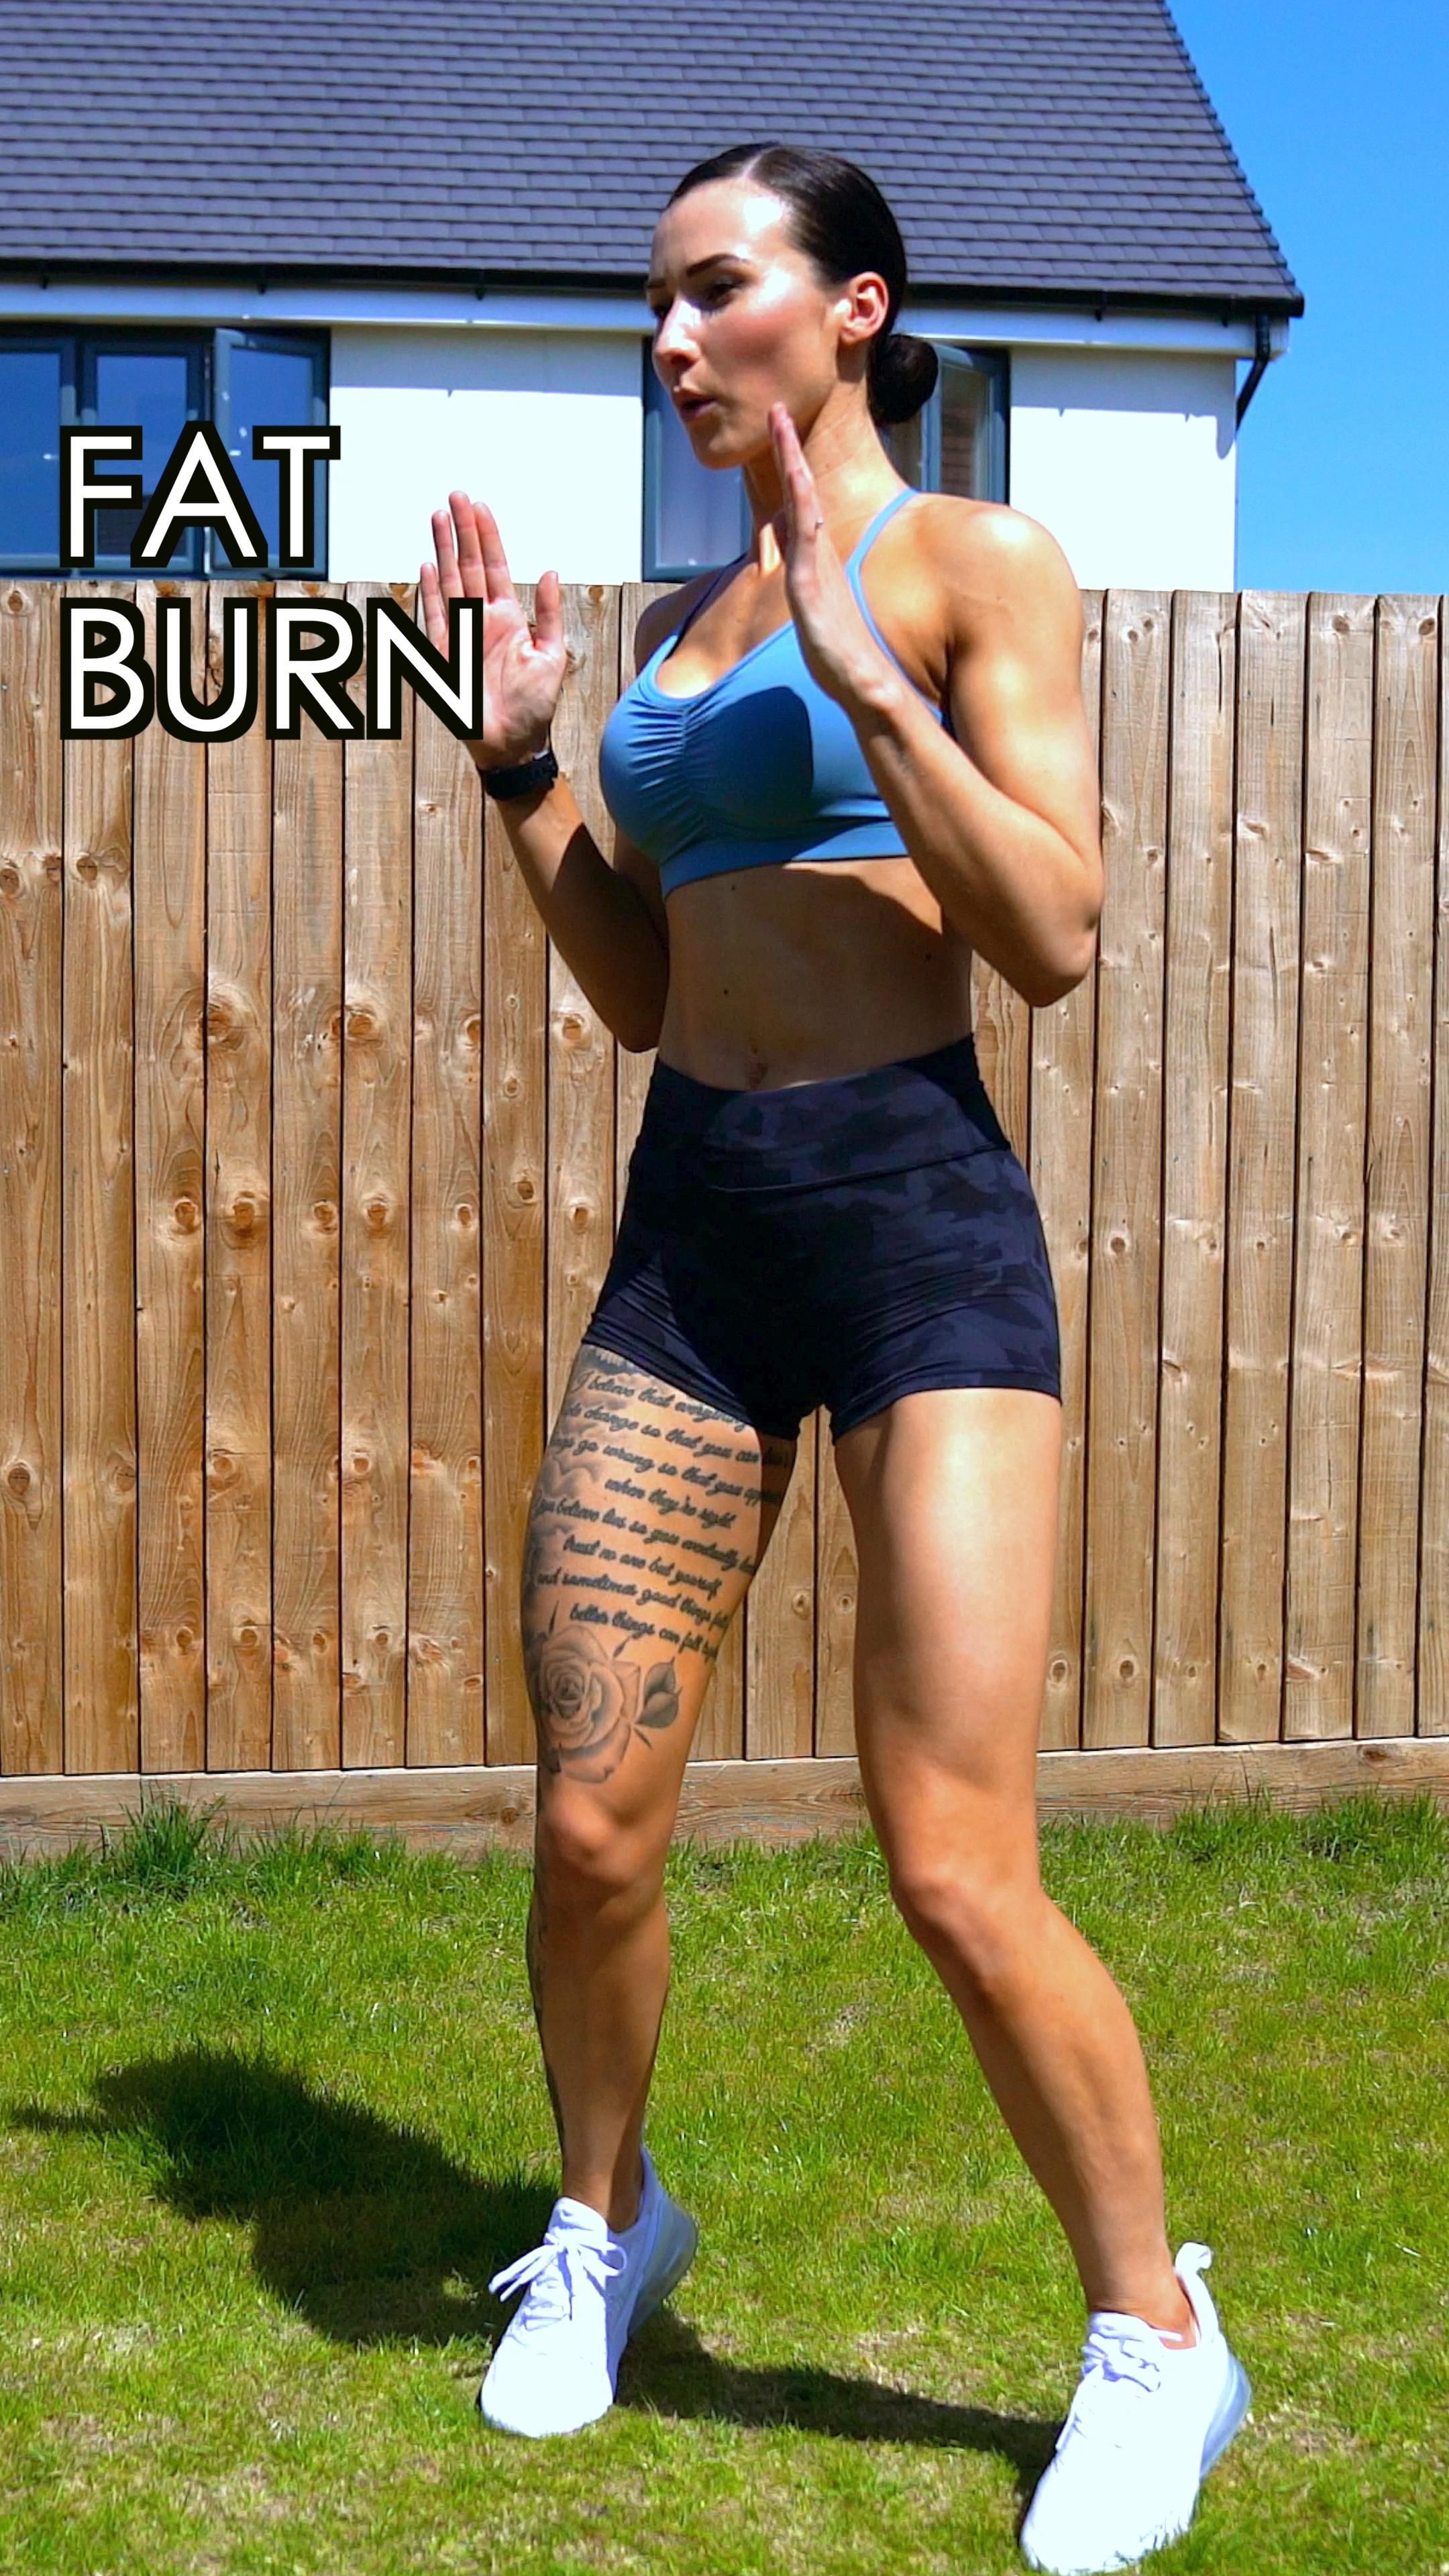 Fat Burn Workout At Home